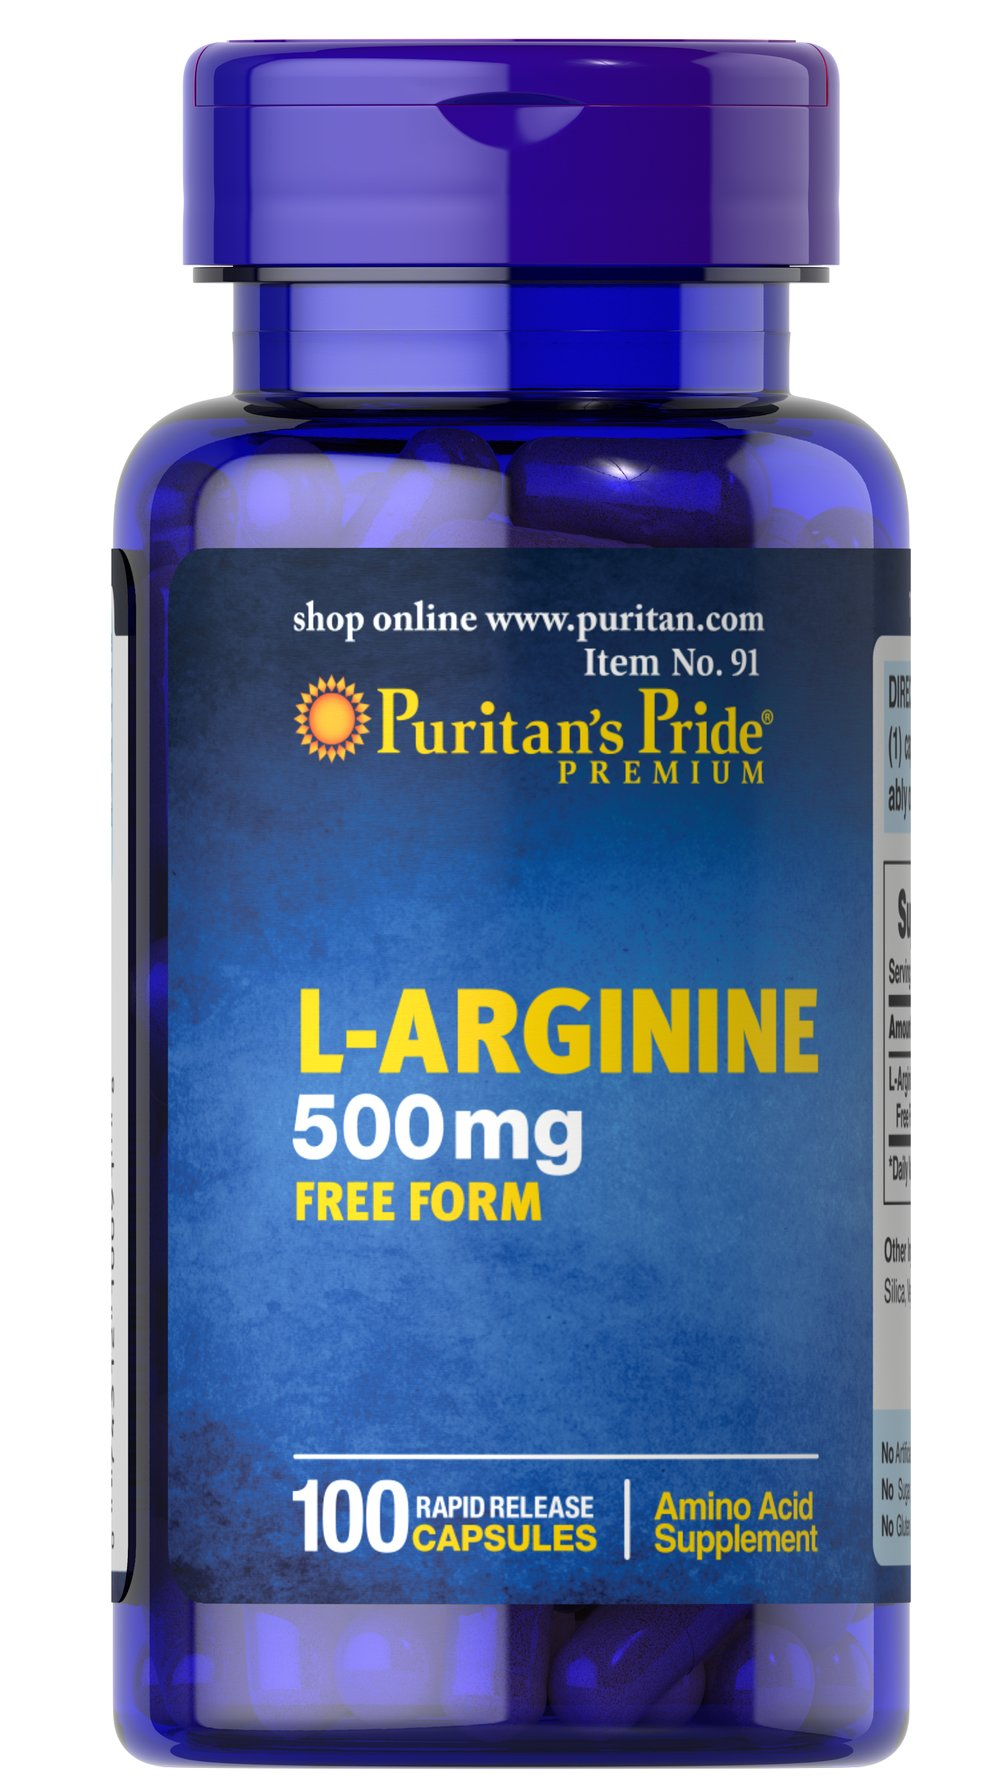 L-Arginine 500 mg <p>Arginine is one of 20 amino acids, the building blocks of protein.** Arginine can  serve as a source of energy, and is involved in various pathways throughout the body.** Arginine supports the effect of exercise and is one of the most important amino acids involved in immune function.** Adults can take one caplet daily. </p> 100 Capsules 500 mg $4.19